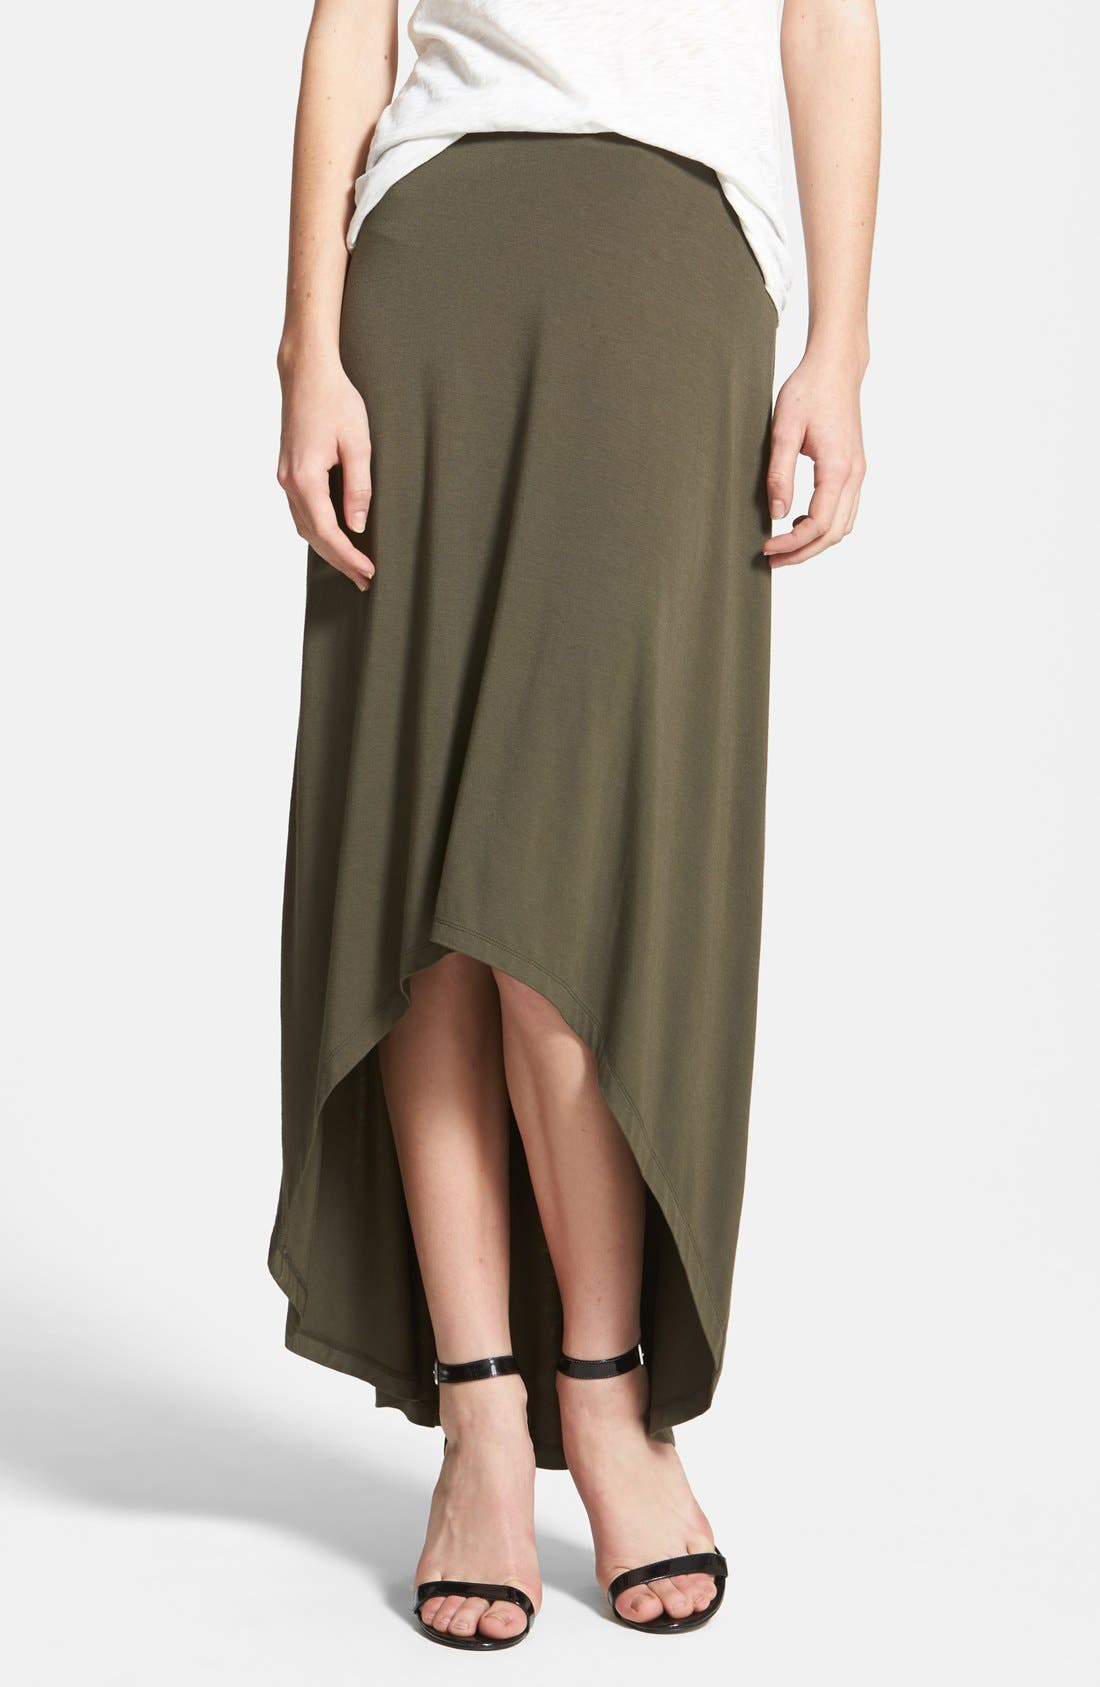 Alternate Image 1 Selected - Halogen® Stretch Knit High/Low Maxi Skirt (Petite)